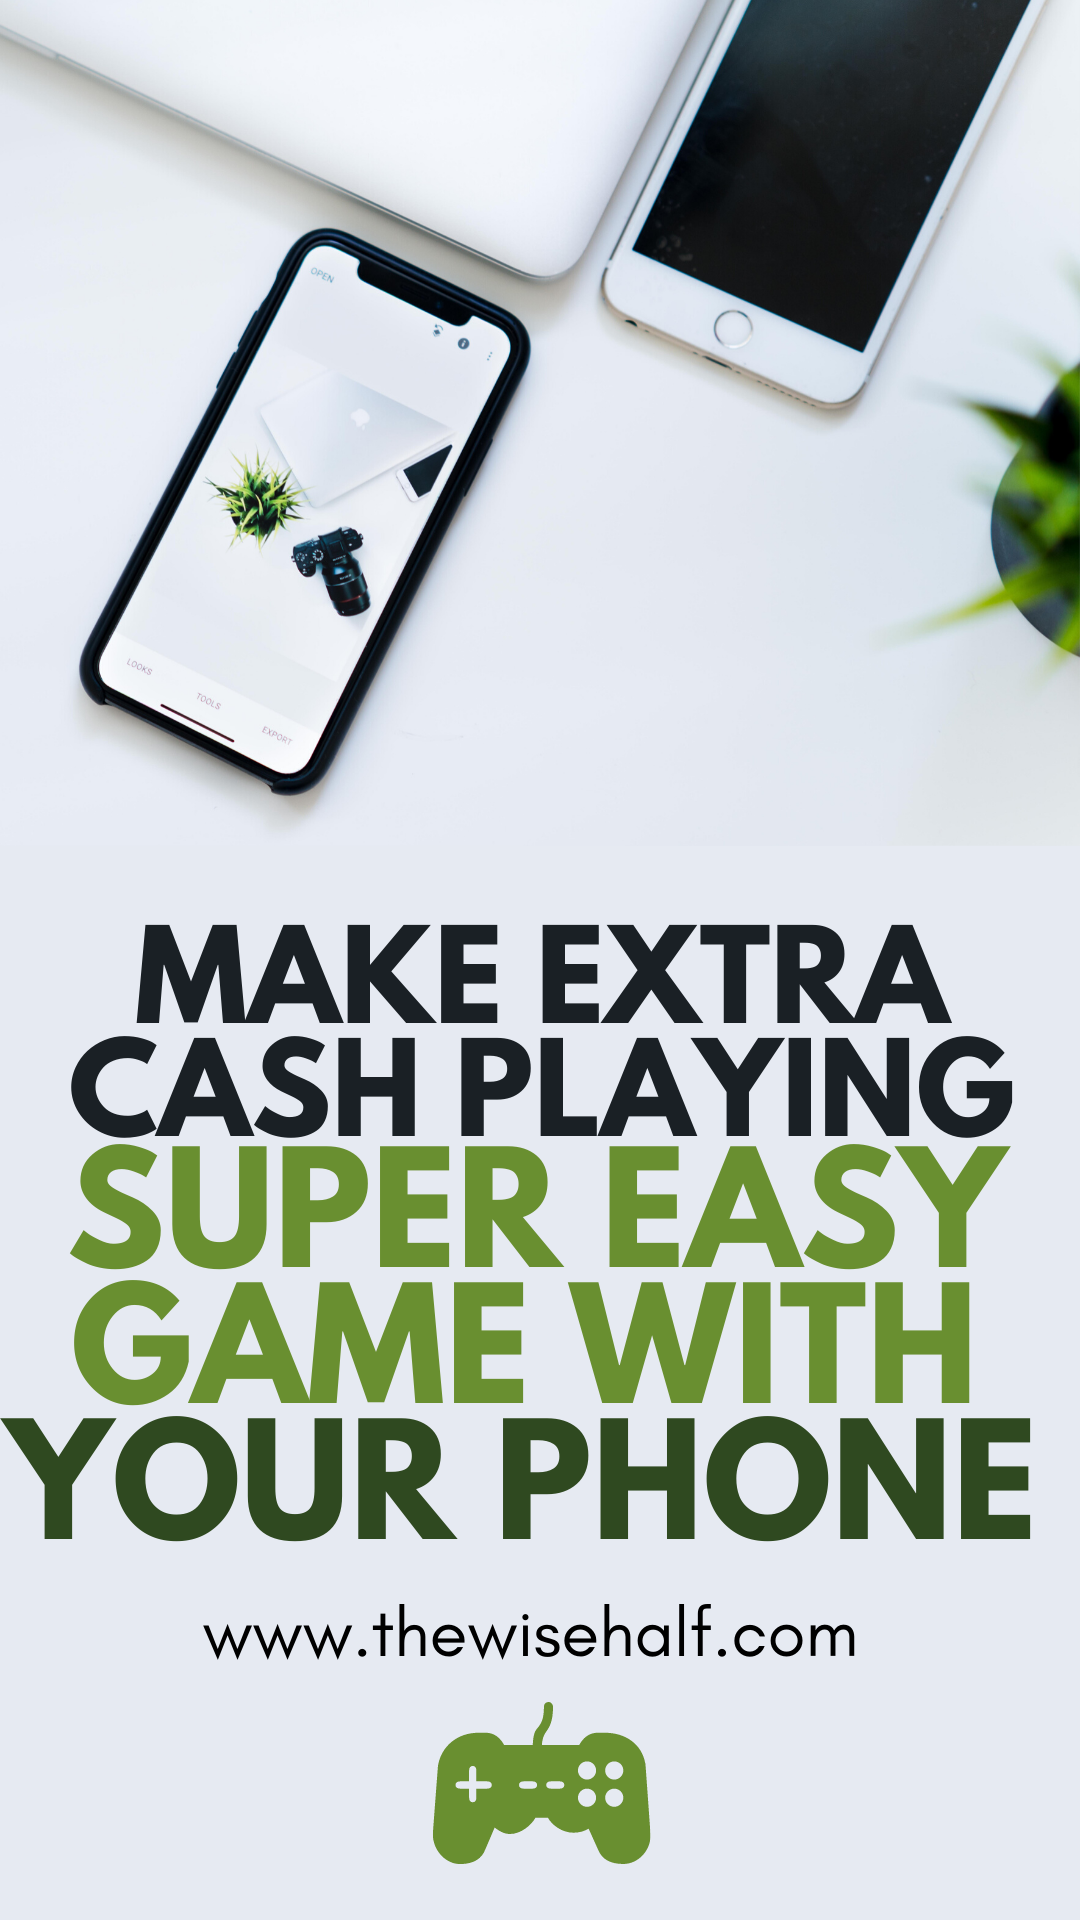 PlaytestCloud Review. Get paid to play games with phones